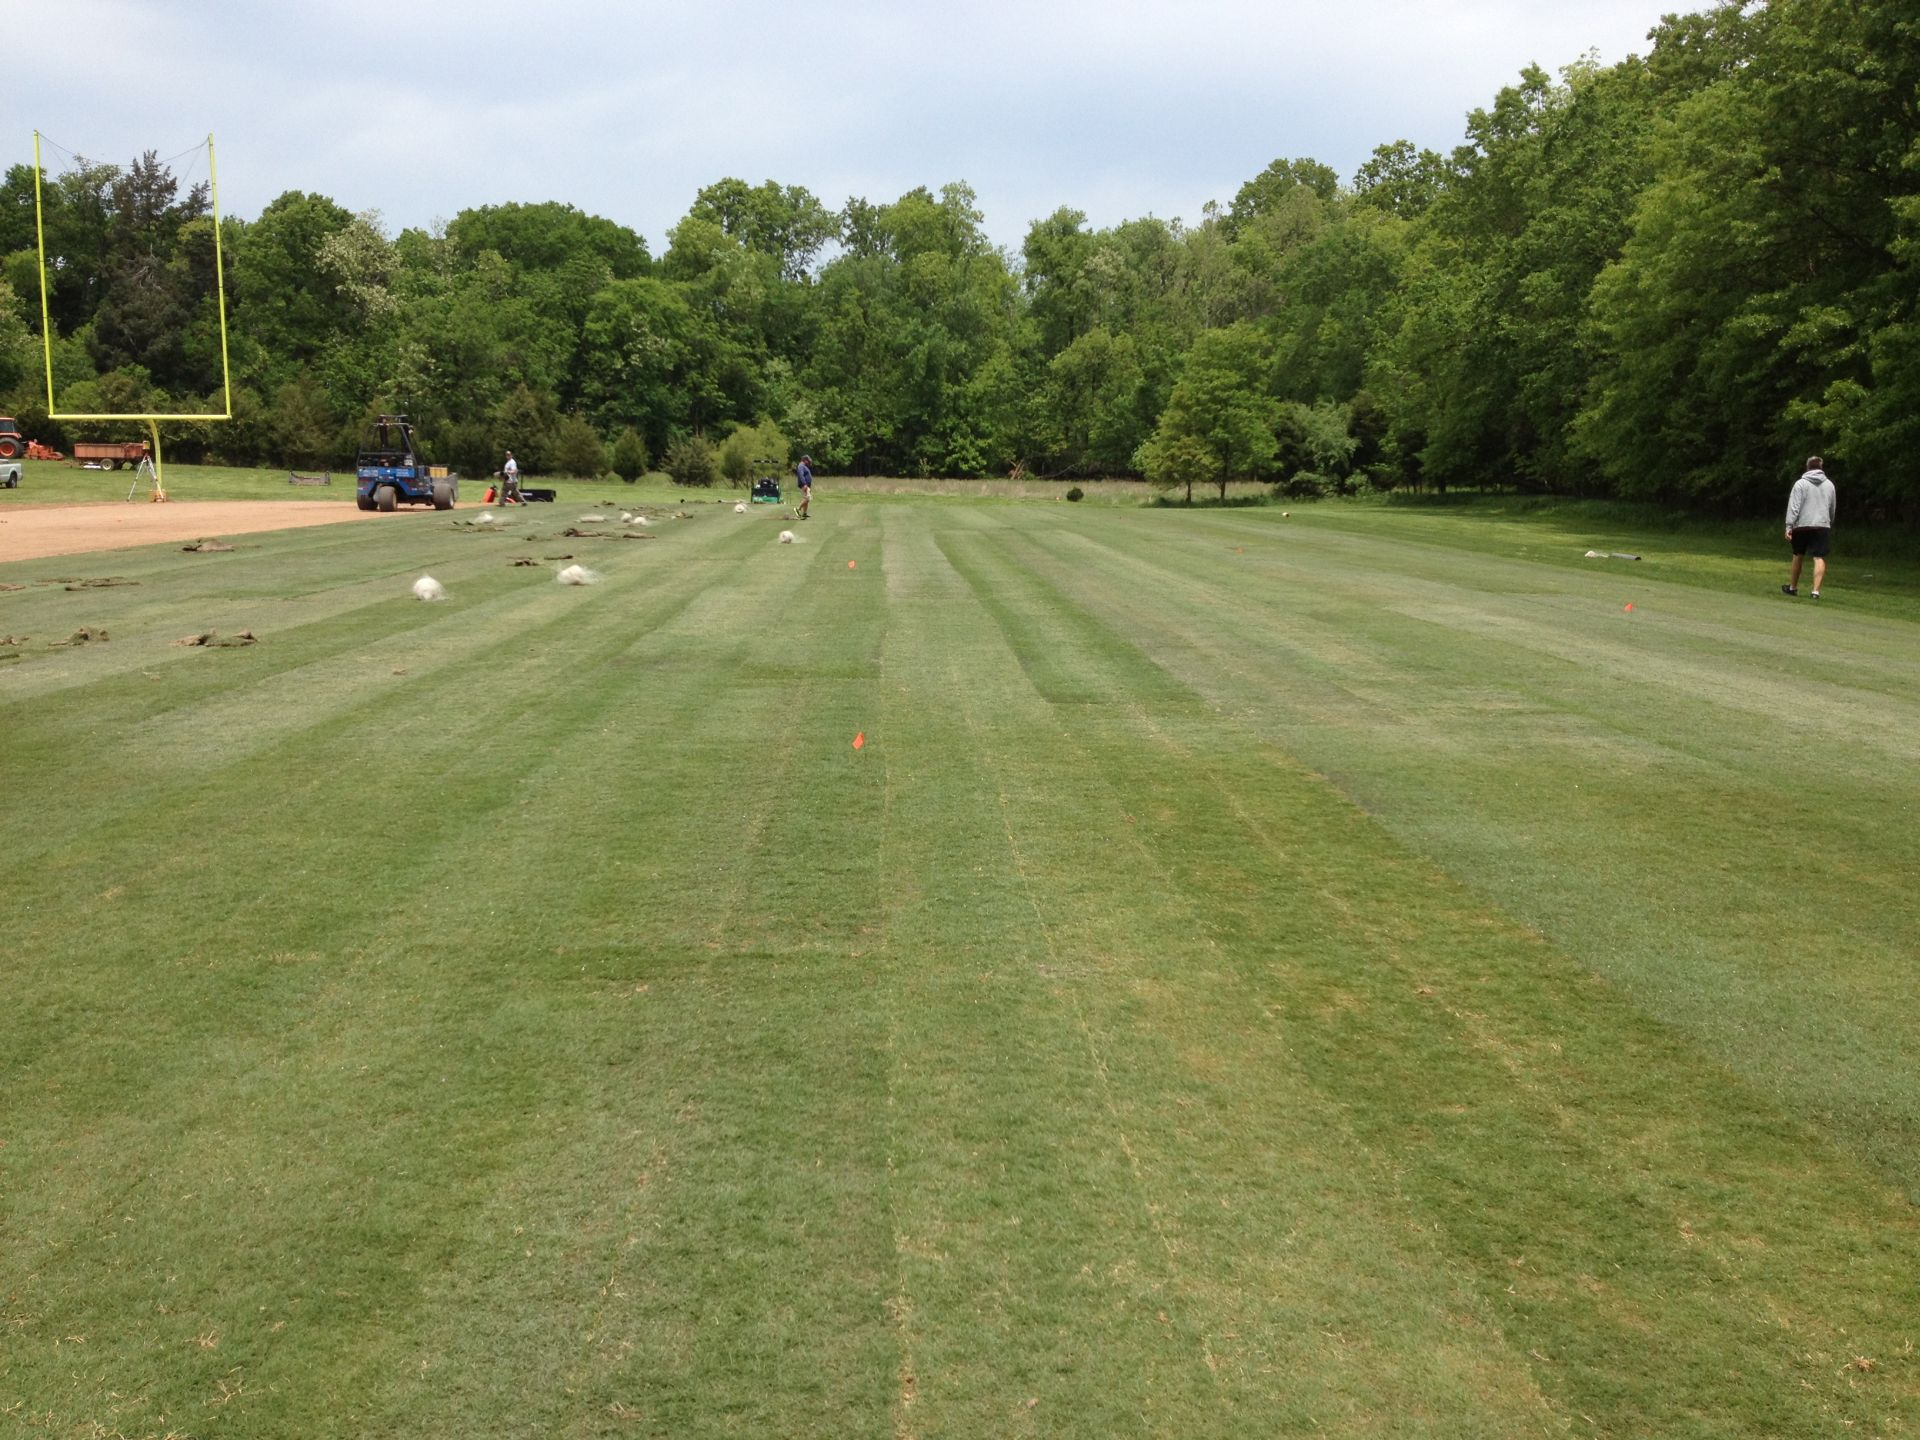 Latitude 36 at Redskins Park, Ashburn, VA